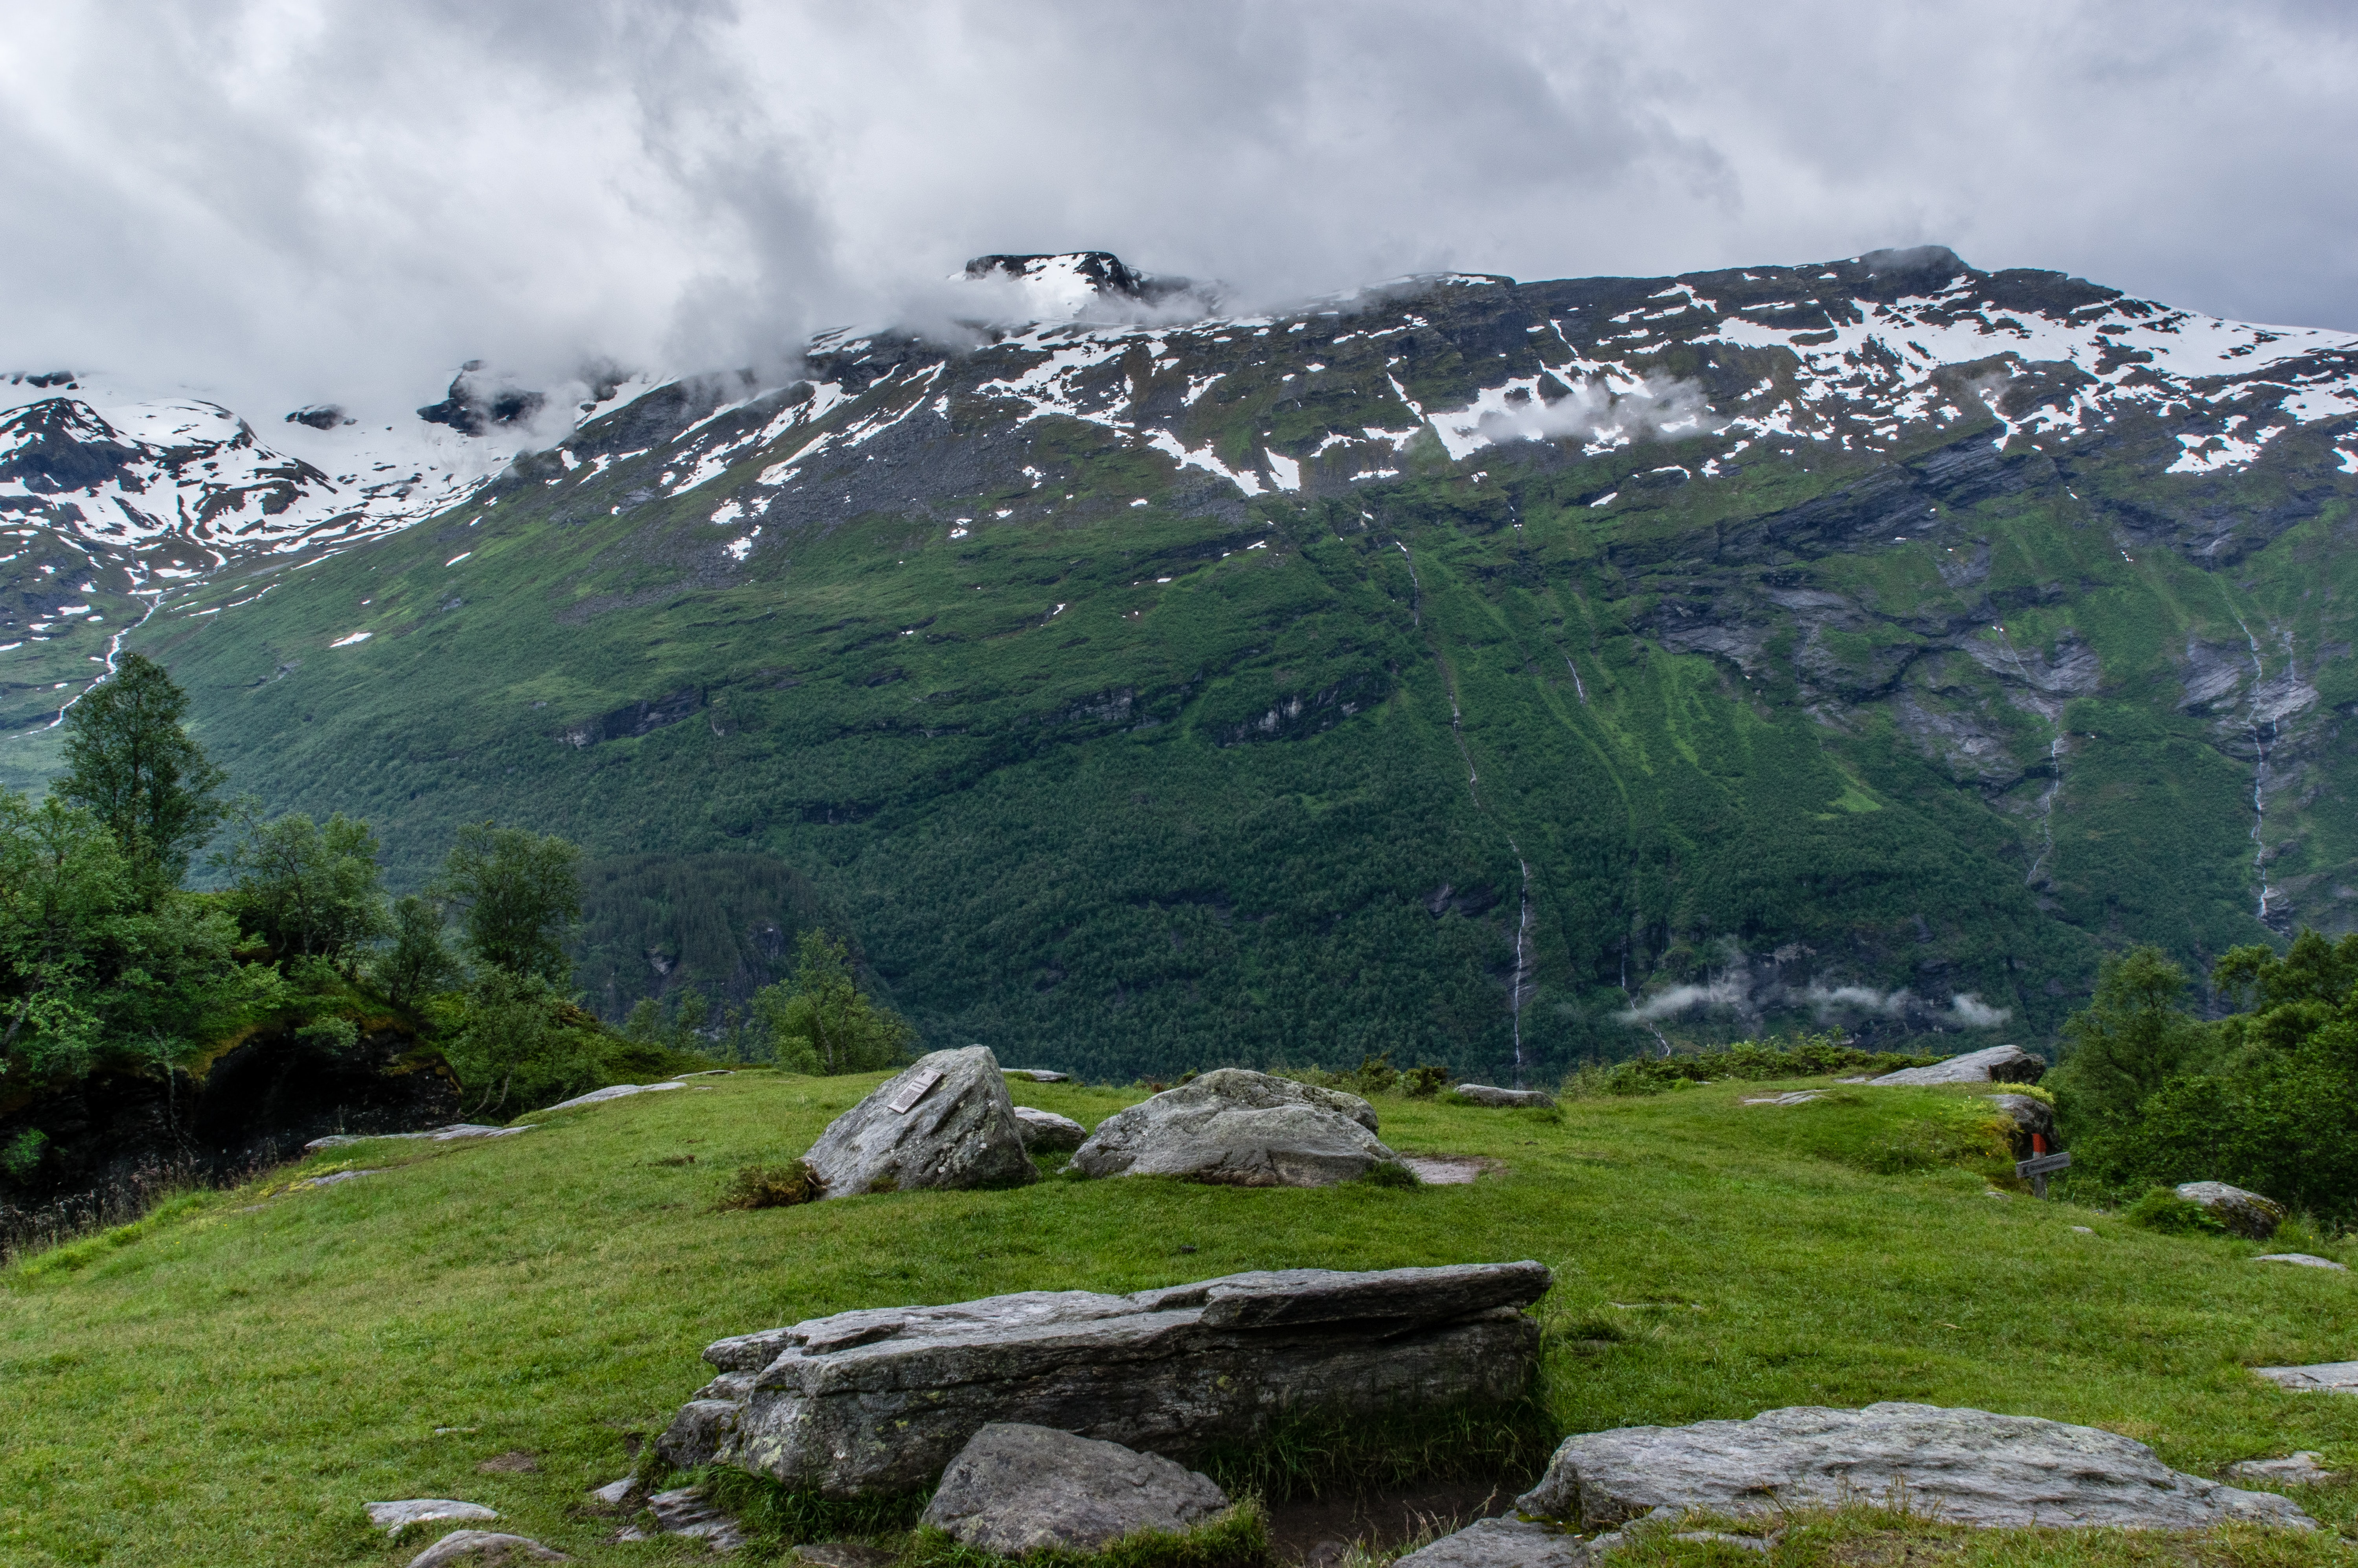 gray and black rocks surrounded by green grass near mountain under white sky at daytime